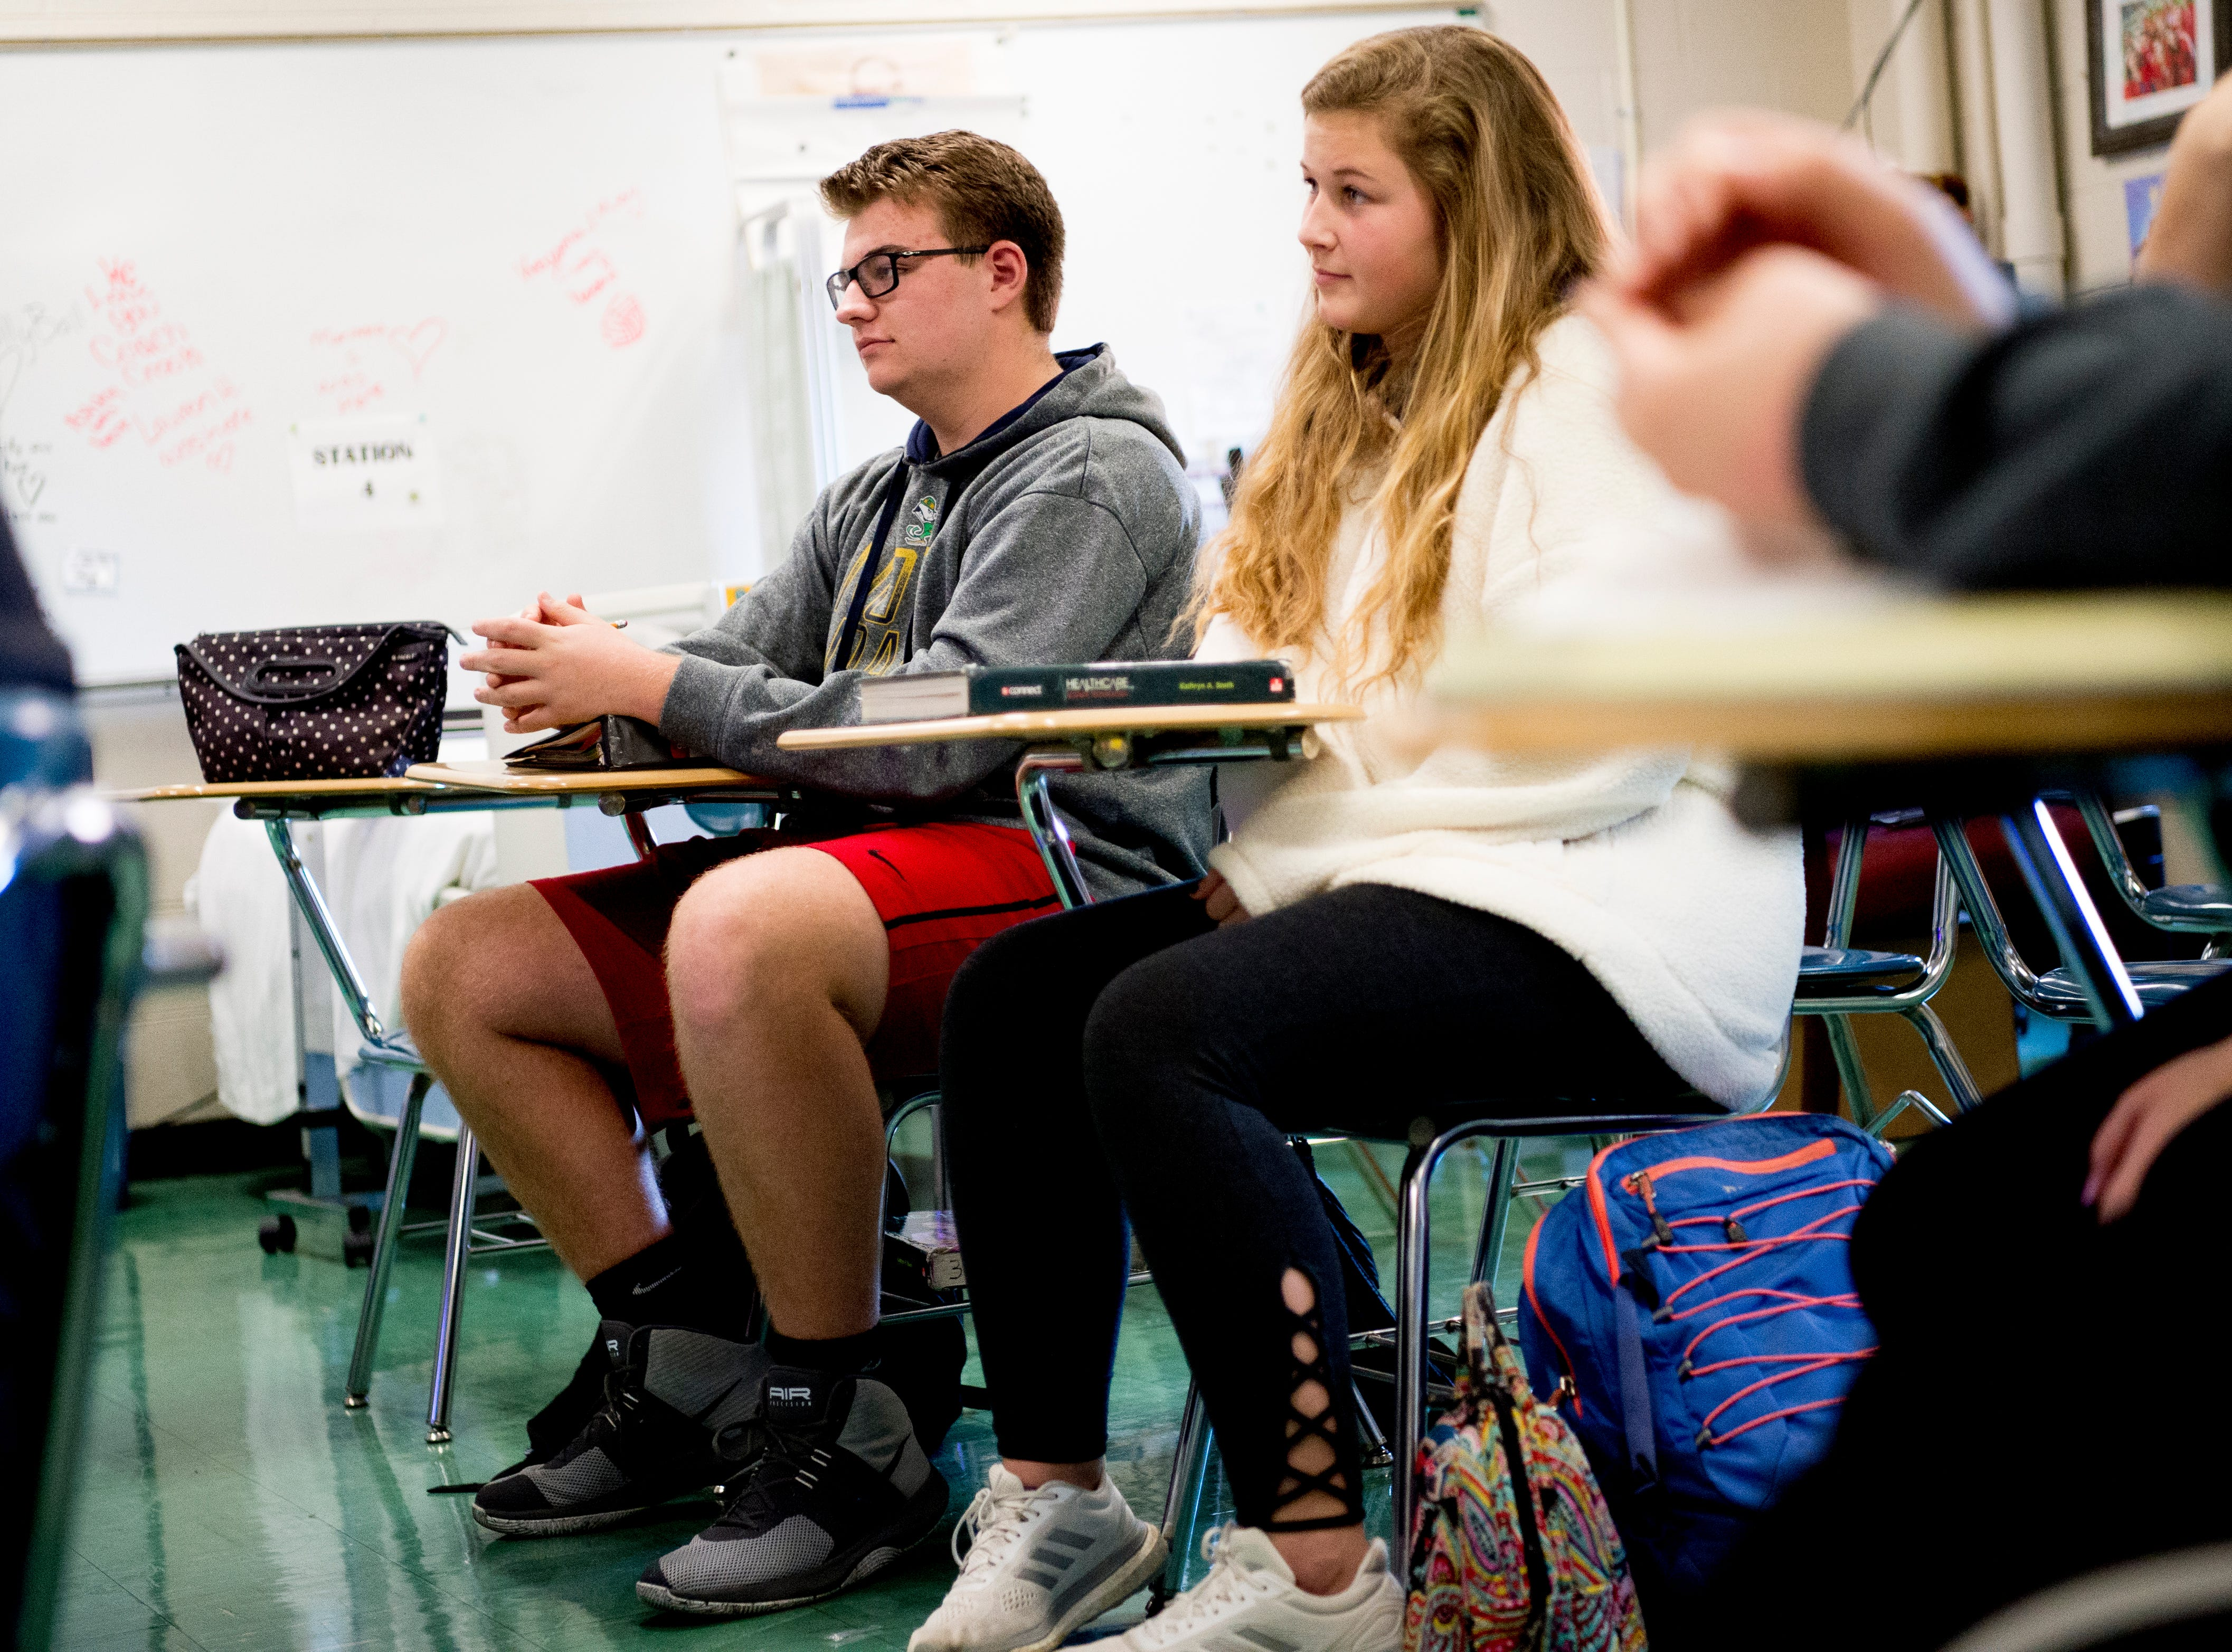 Students listen in Anita Crook's medical therapeutics class at Maryville High School in Maryville, Tennessee, on Friday, January 11, 2019. More time with teachers as well as time to study and work on homework are some of the benefits students enjoy when on block schedules.